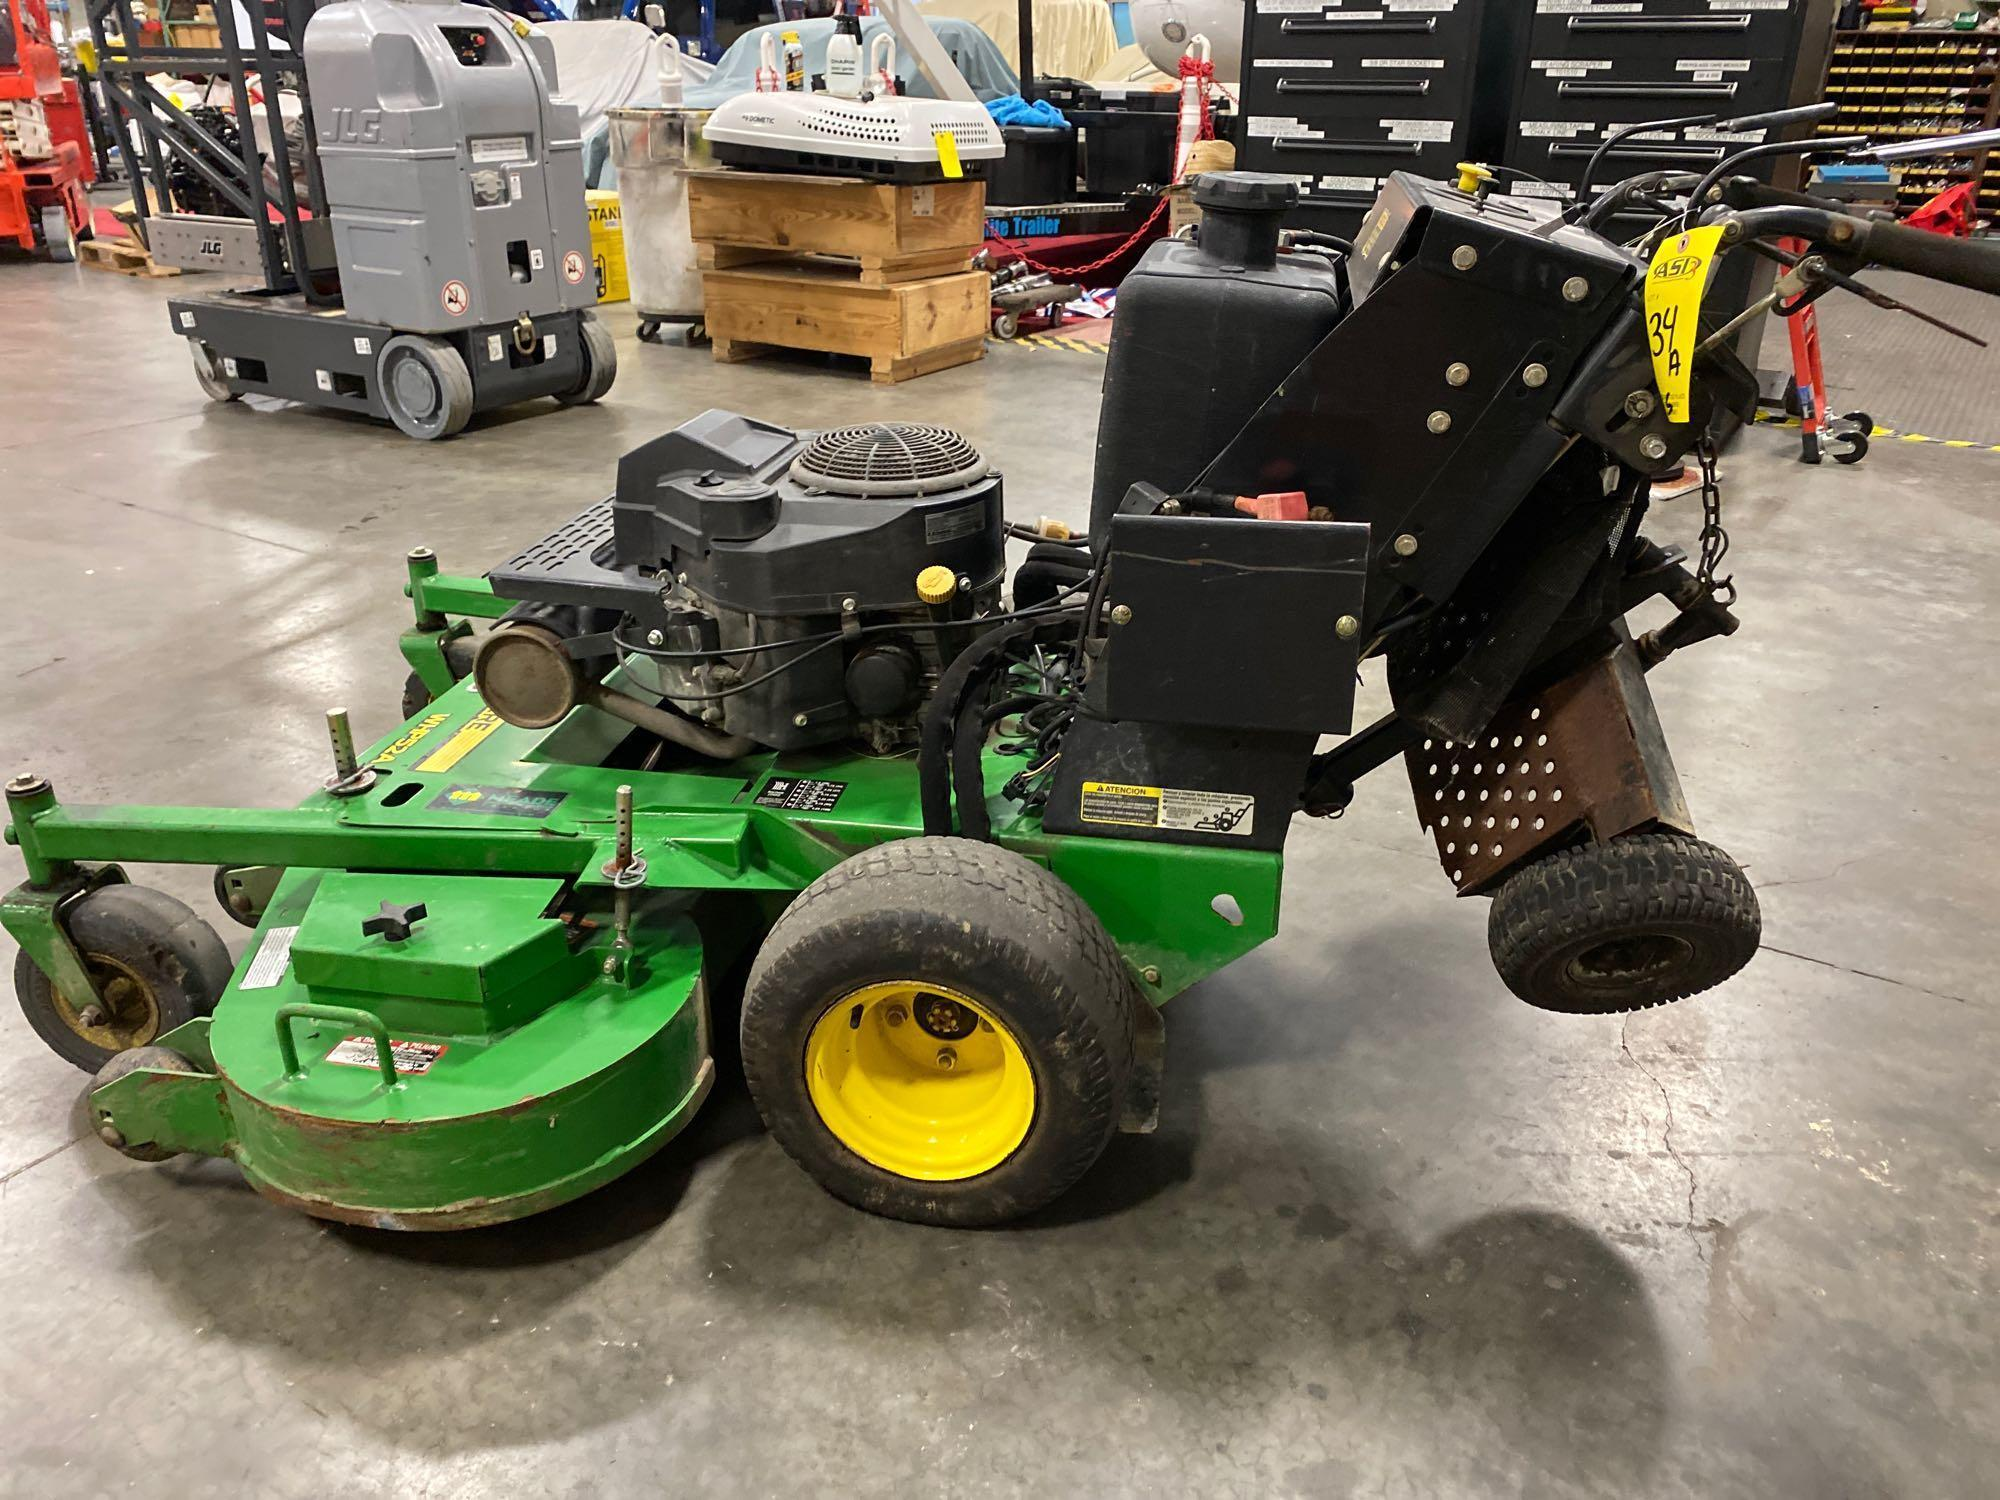 "JOHN DEERE MOWER JOHN DEERE WHP52A MOWER, 52"" DECK, RUNS AND OPERATES - Image 3 of 7"